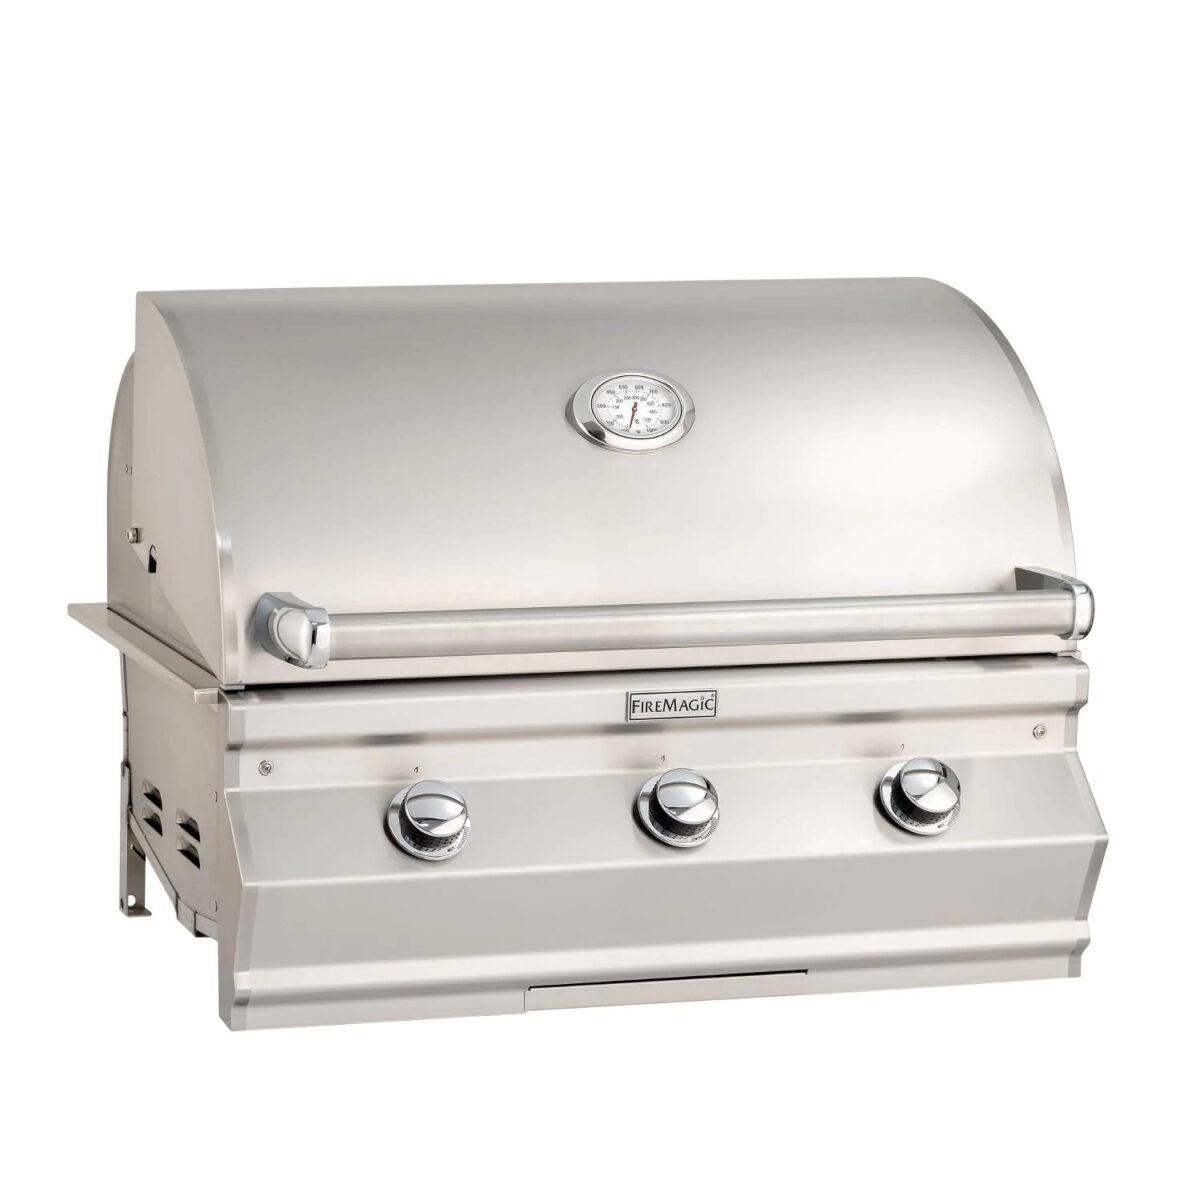 Fire Magic Choice C540I 30 Inch Built In Gas Grill